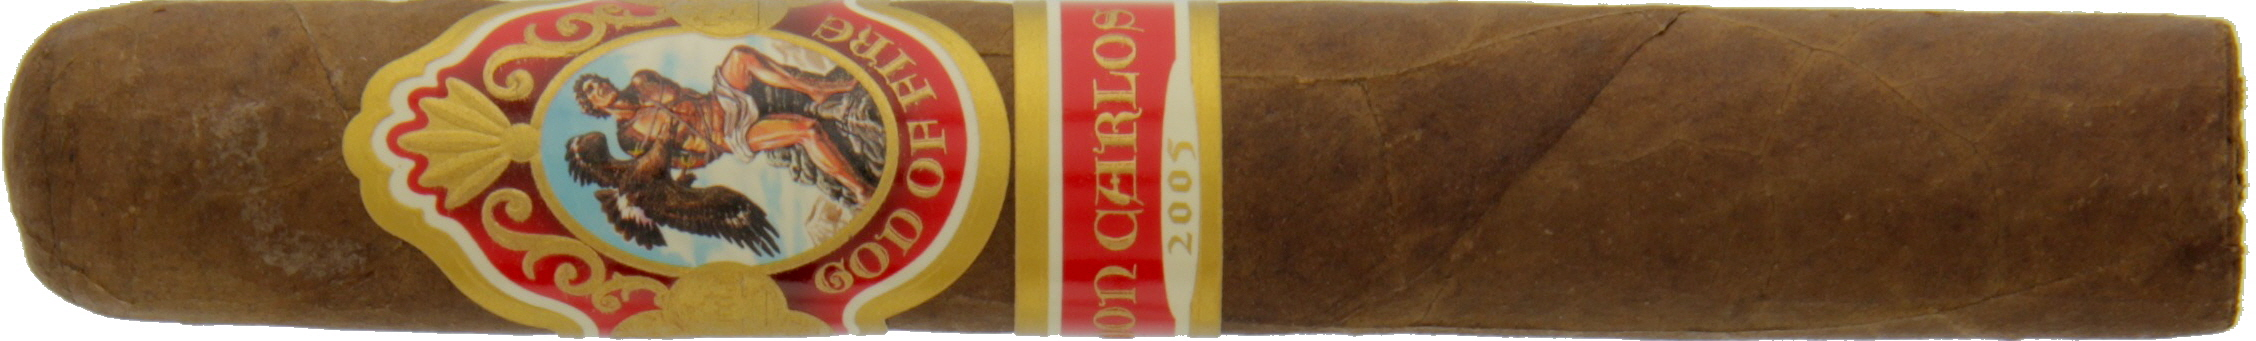 God of Fire Robusto Limited Edition 2007 by Carlito